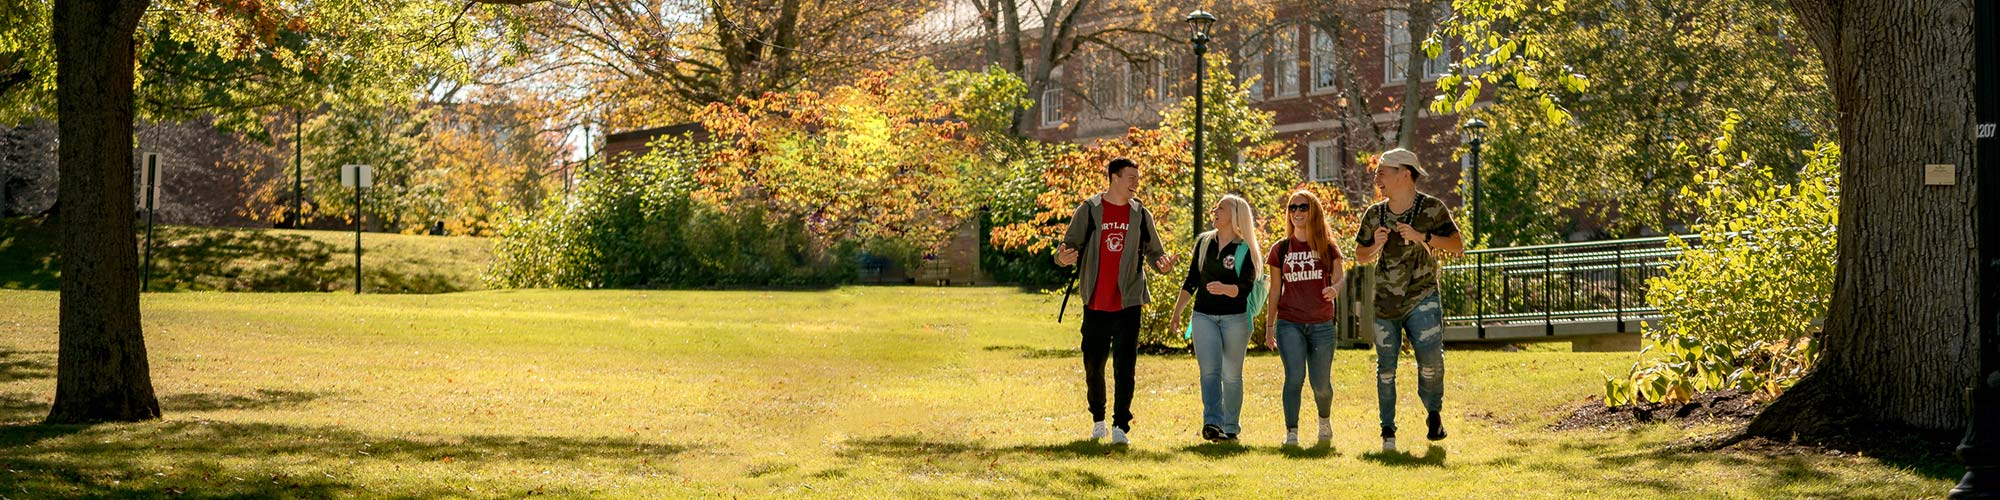 Students walking in front of Moffett Center on a fall day